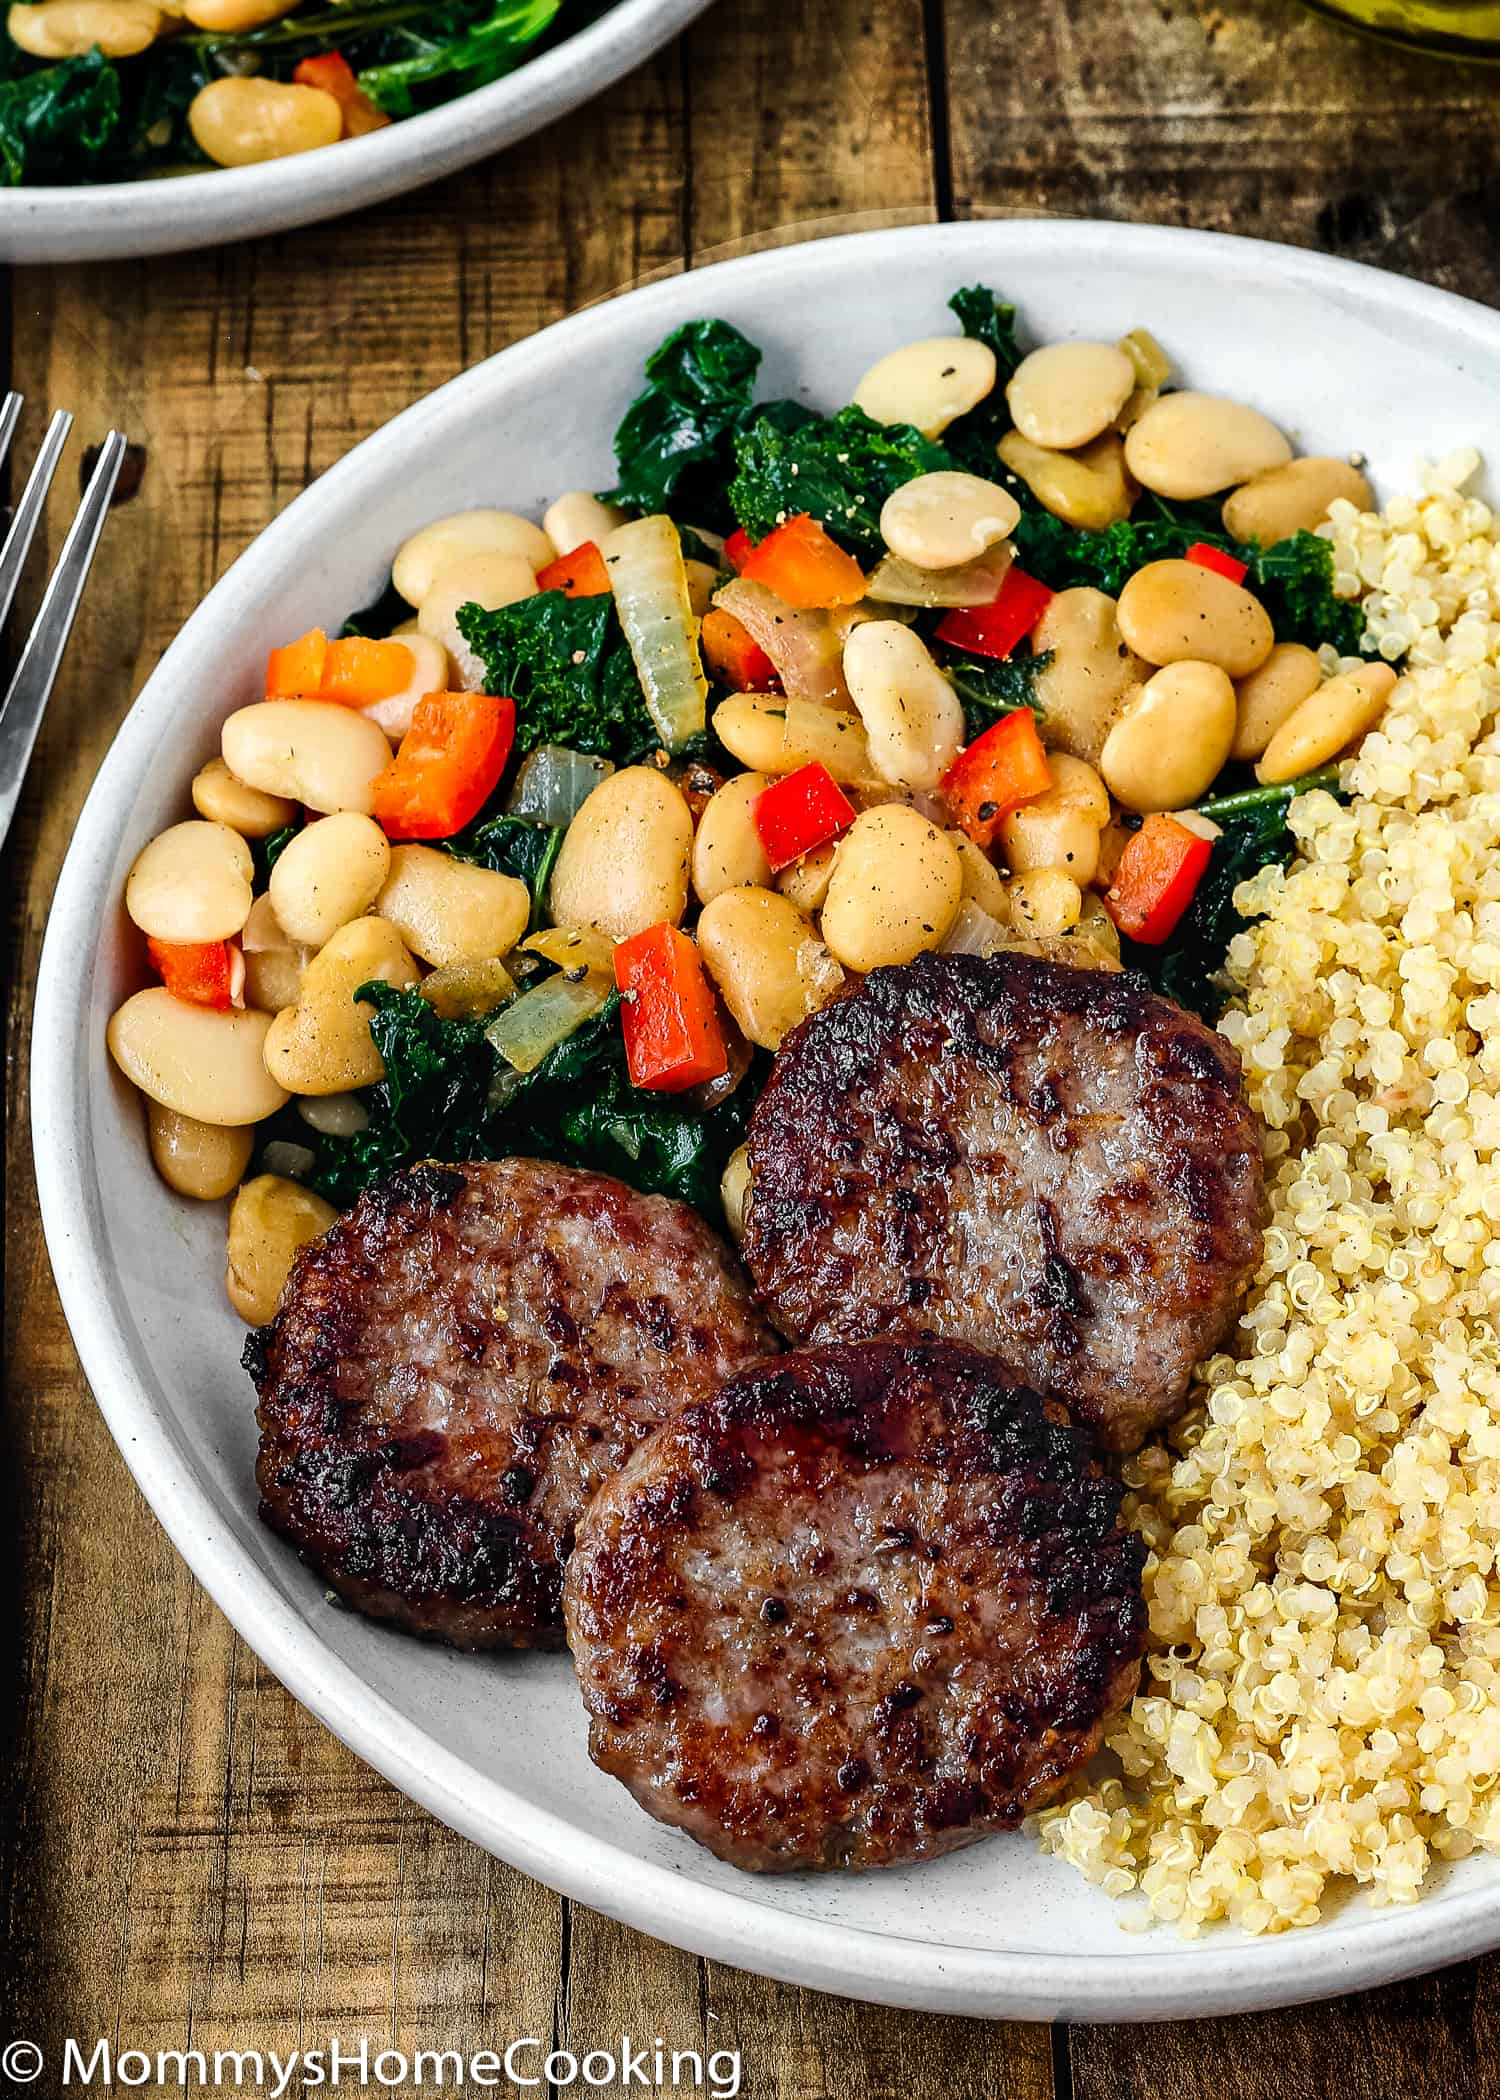 This Easy Sausage and Bean Quinoa Bowl is a delicious way to bring breakfast to the dinner table! Made with breakfast sausage, quinoa, beans, kale and veggies, this satisfying meal comes together in no time! https://mommyshomecooking.com